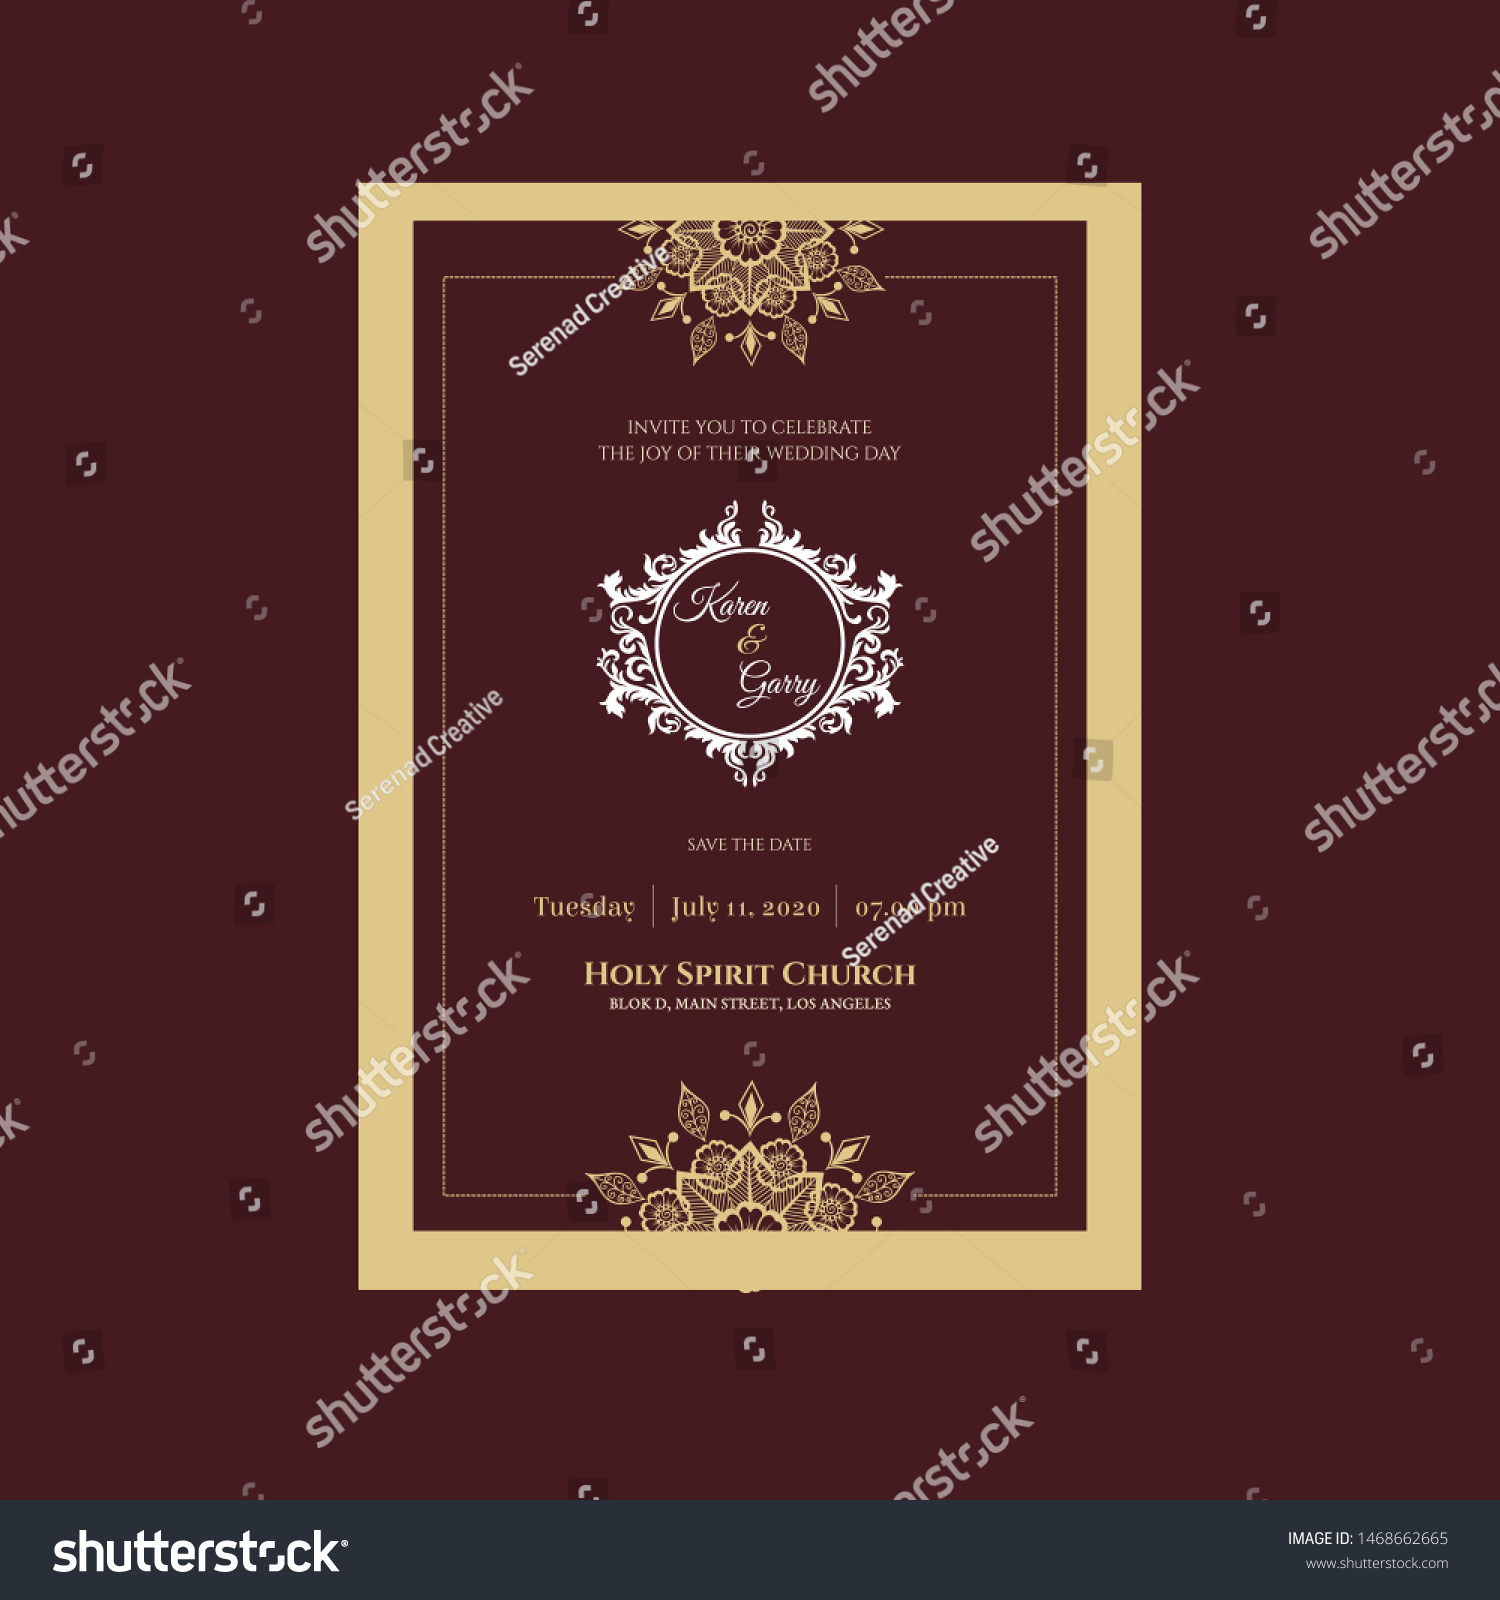 Classy Gold Wedding Invitation Red Background Stock Vector Royalty Free 1468662665